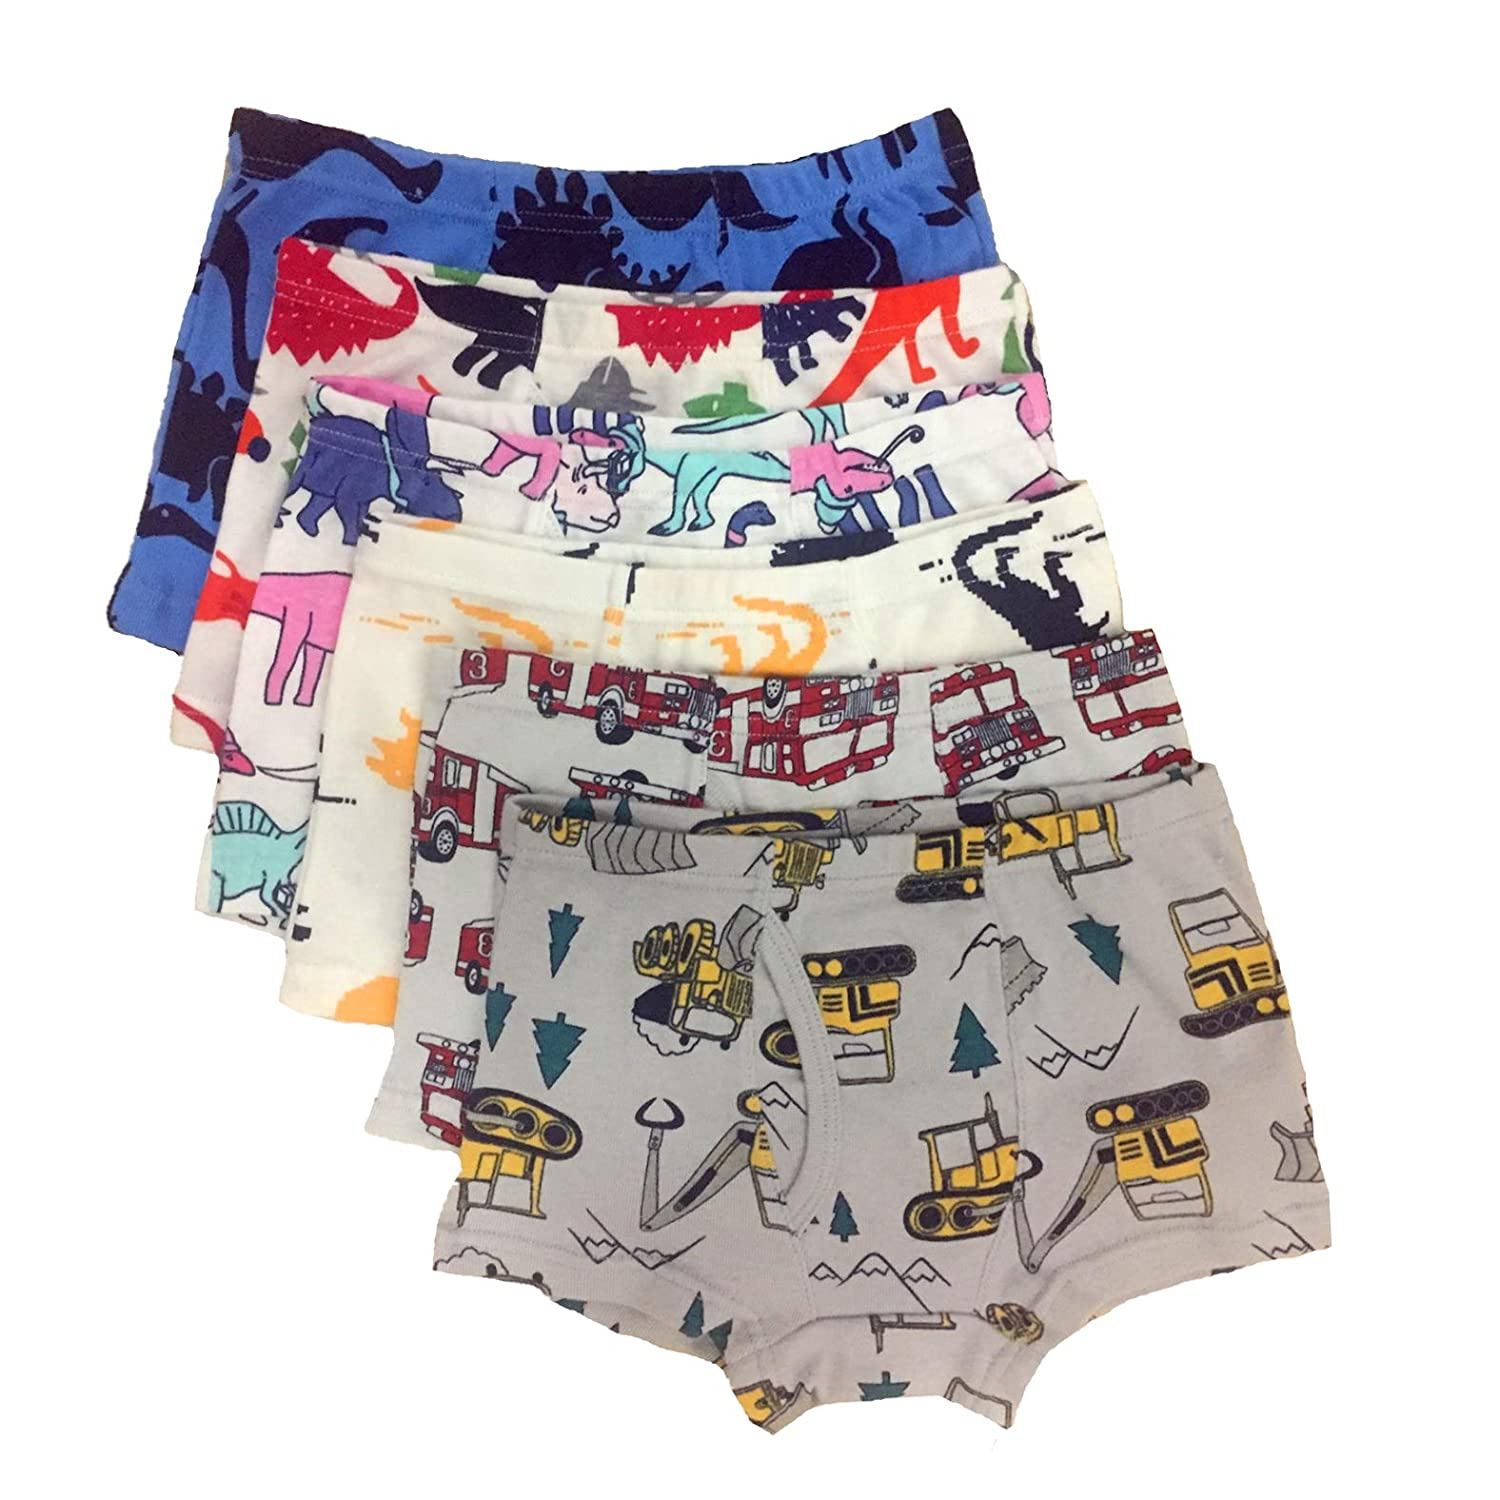 Cczmfeas Boys Boxer Briefs Cotton Comfort Dinosaur Underwear for Kids 6 Pack